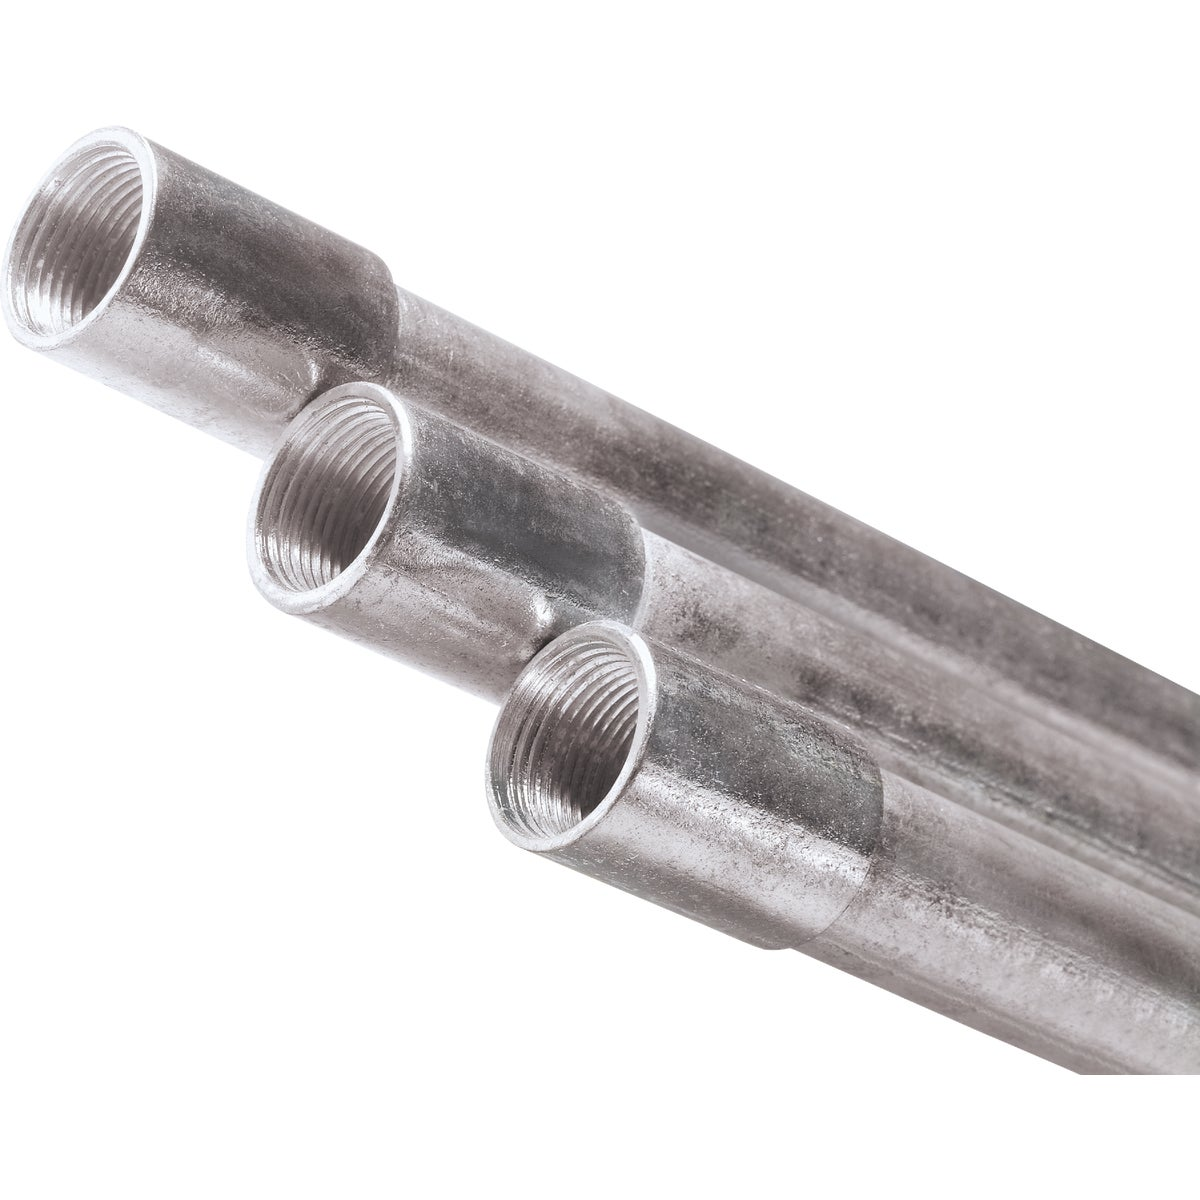 "3/4"" RIGID 10' CONDUIT - 103069 by Allied Tube  Atkore"